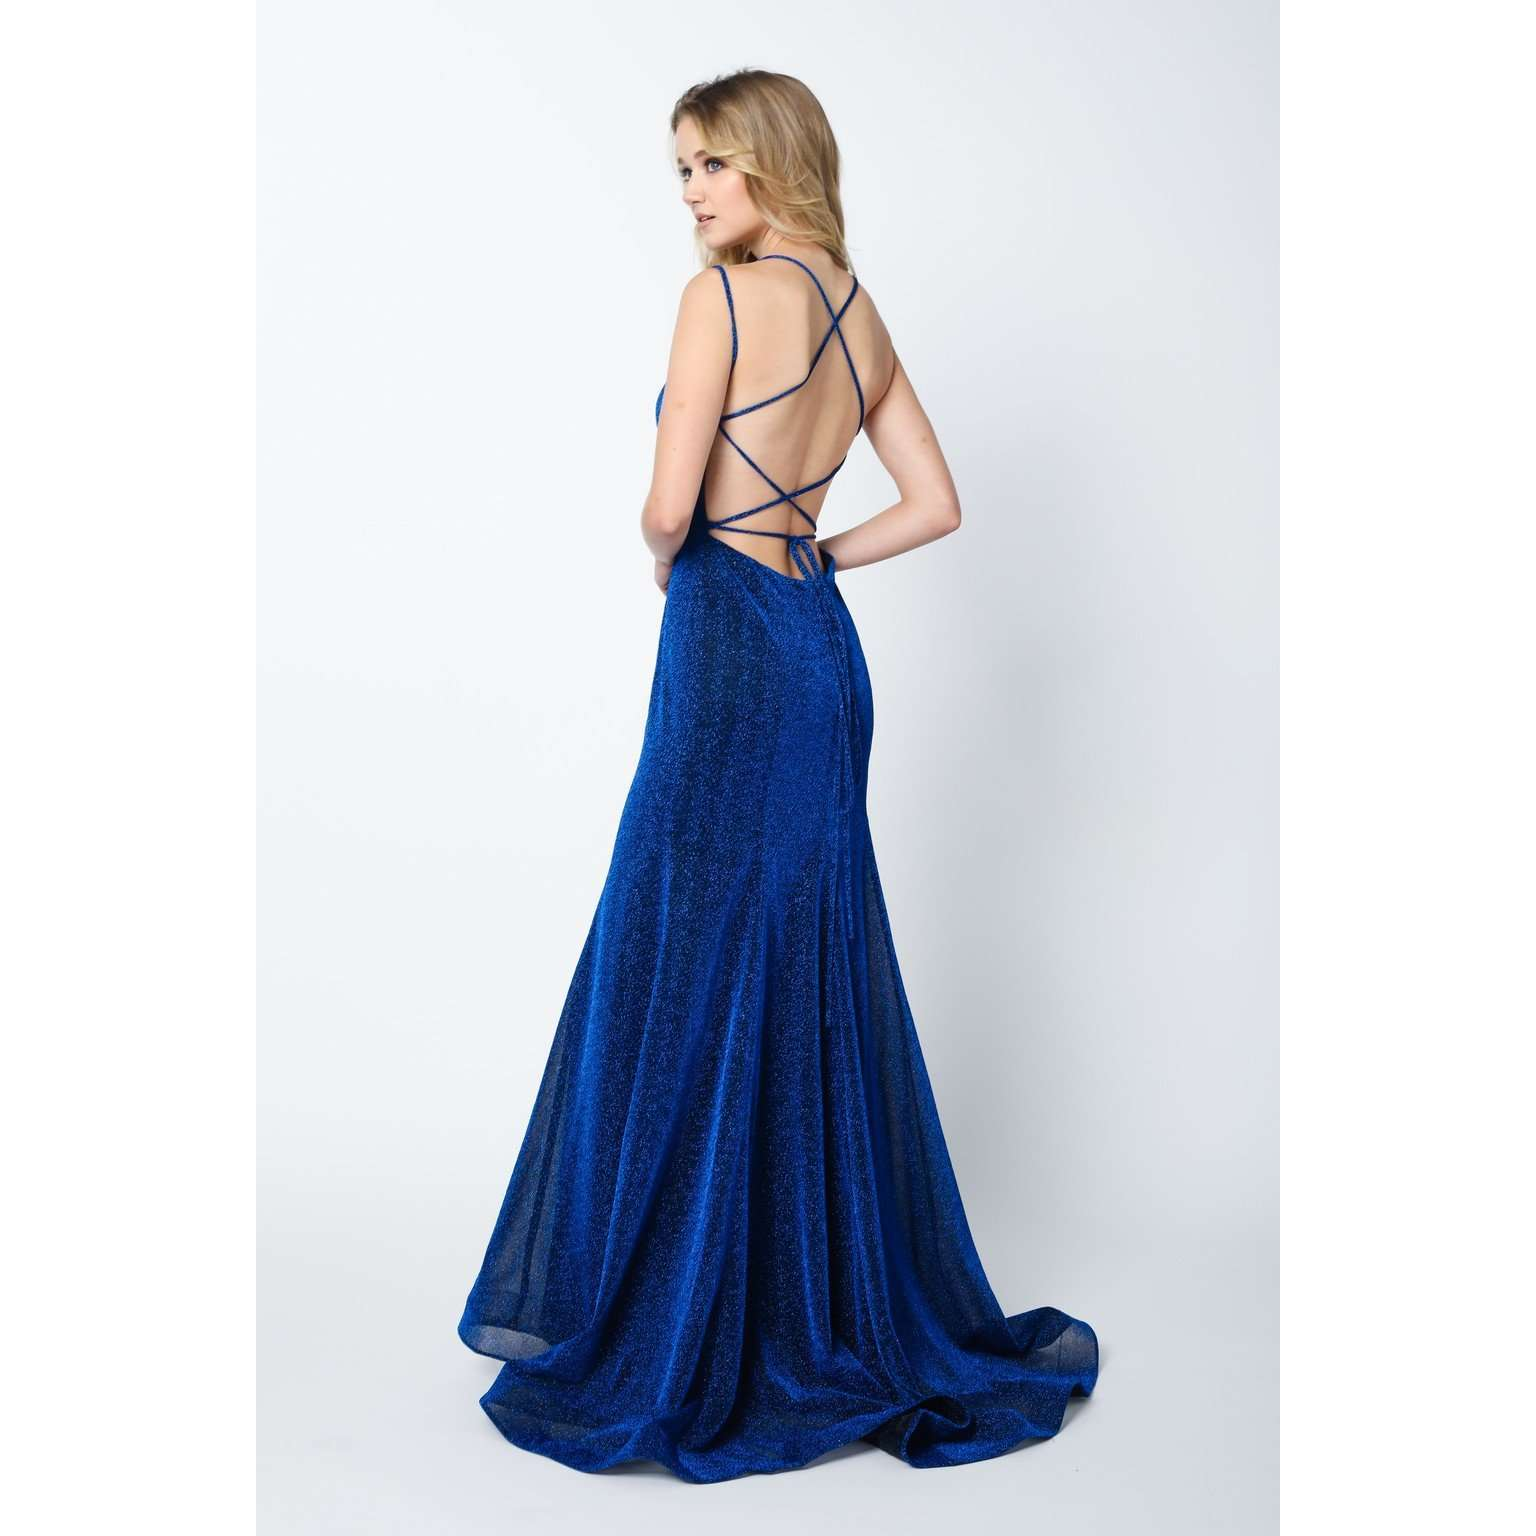 Criss Cross Back V Neck Glitter Fitted Prom Dress 697 - Julietdresses